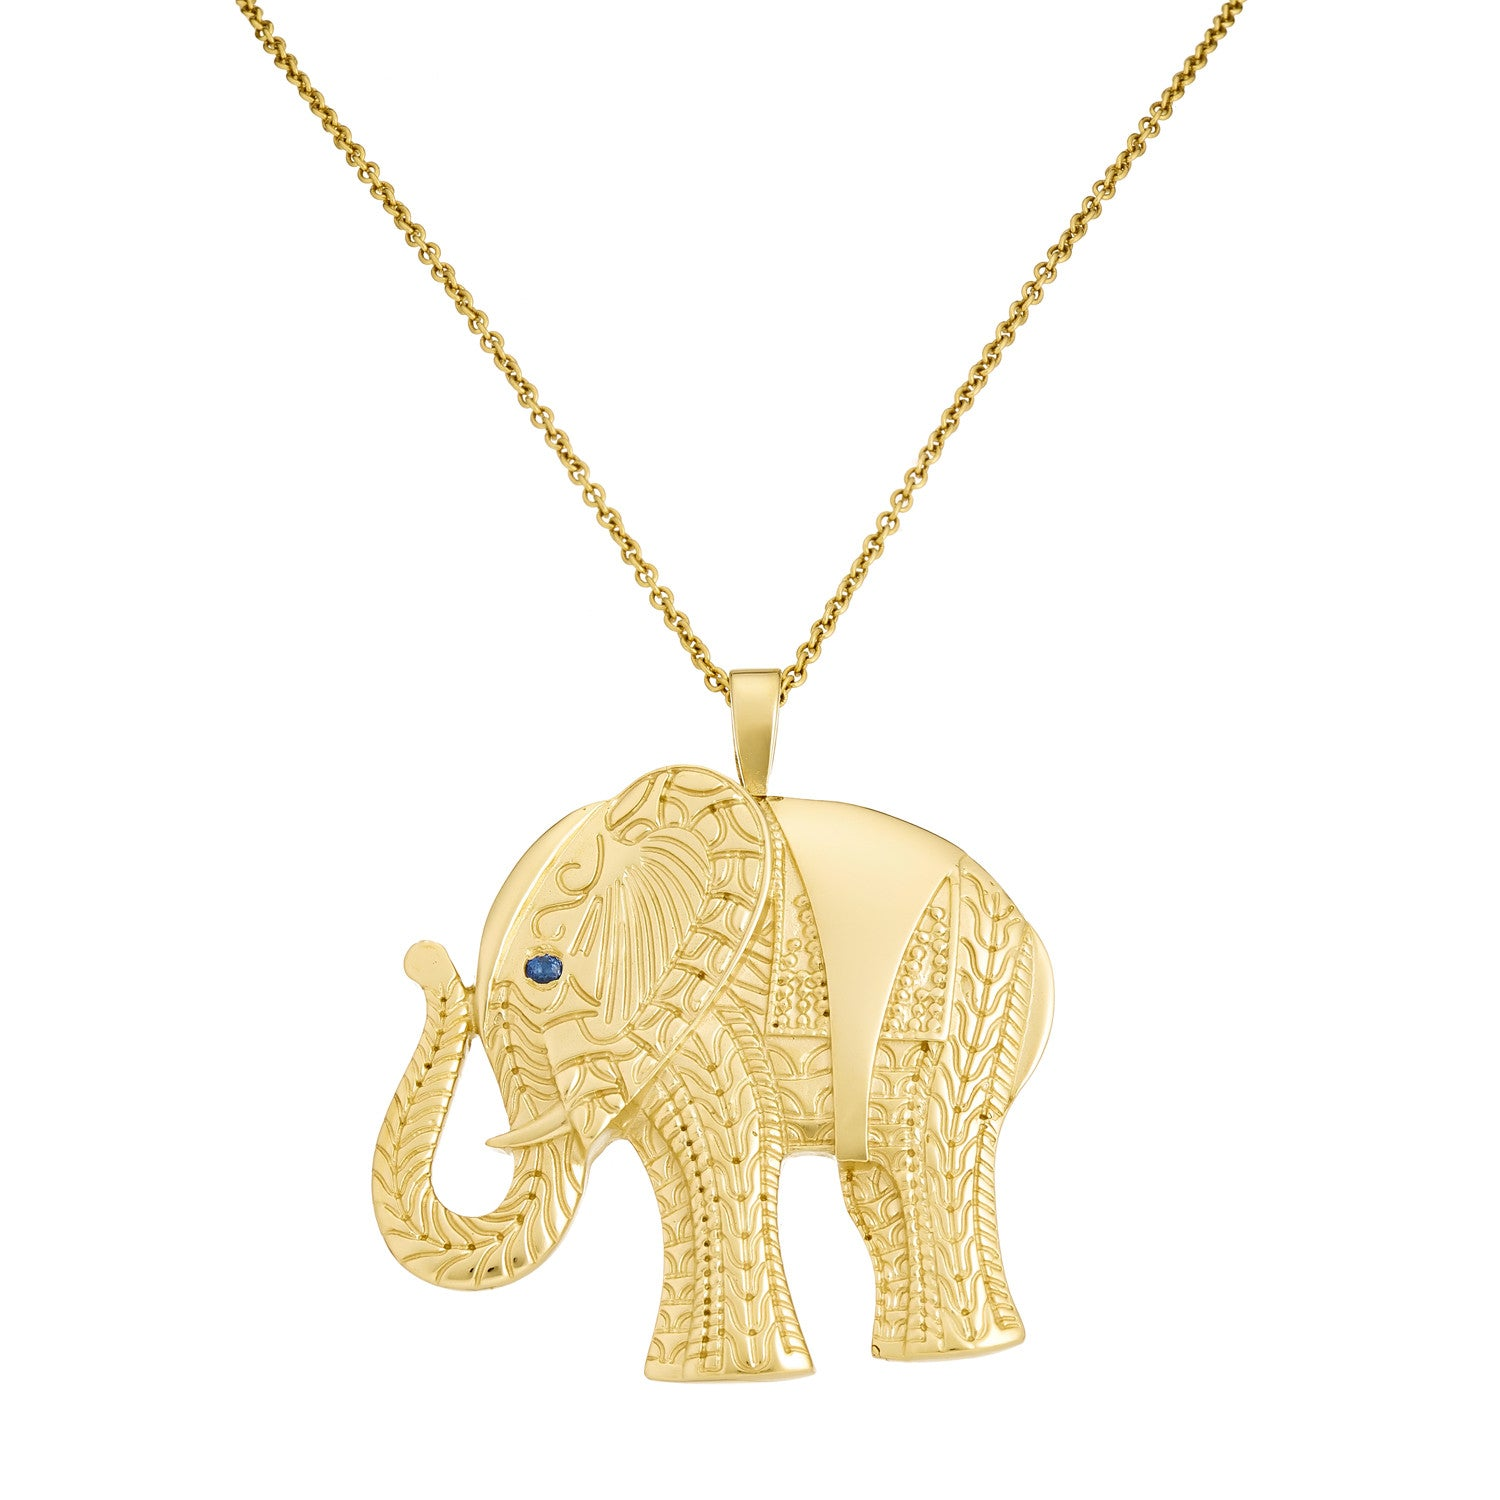 Coco\'s Liberty: Elefant necklace | Jewelry,Jewelry > Necklaces -  Hiphunters Shop